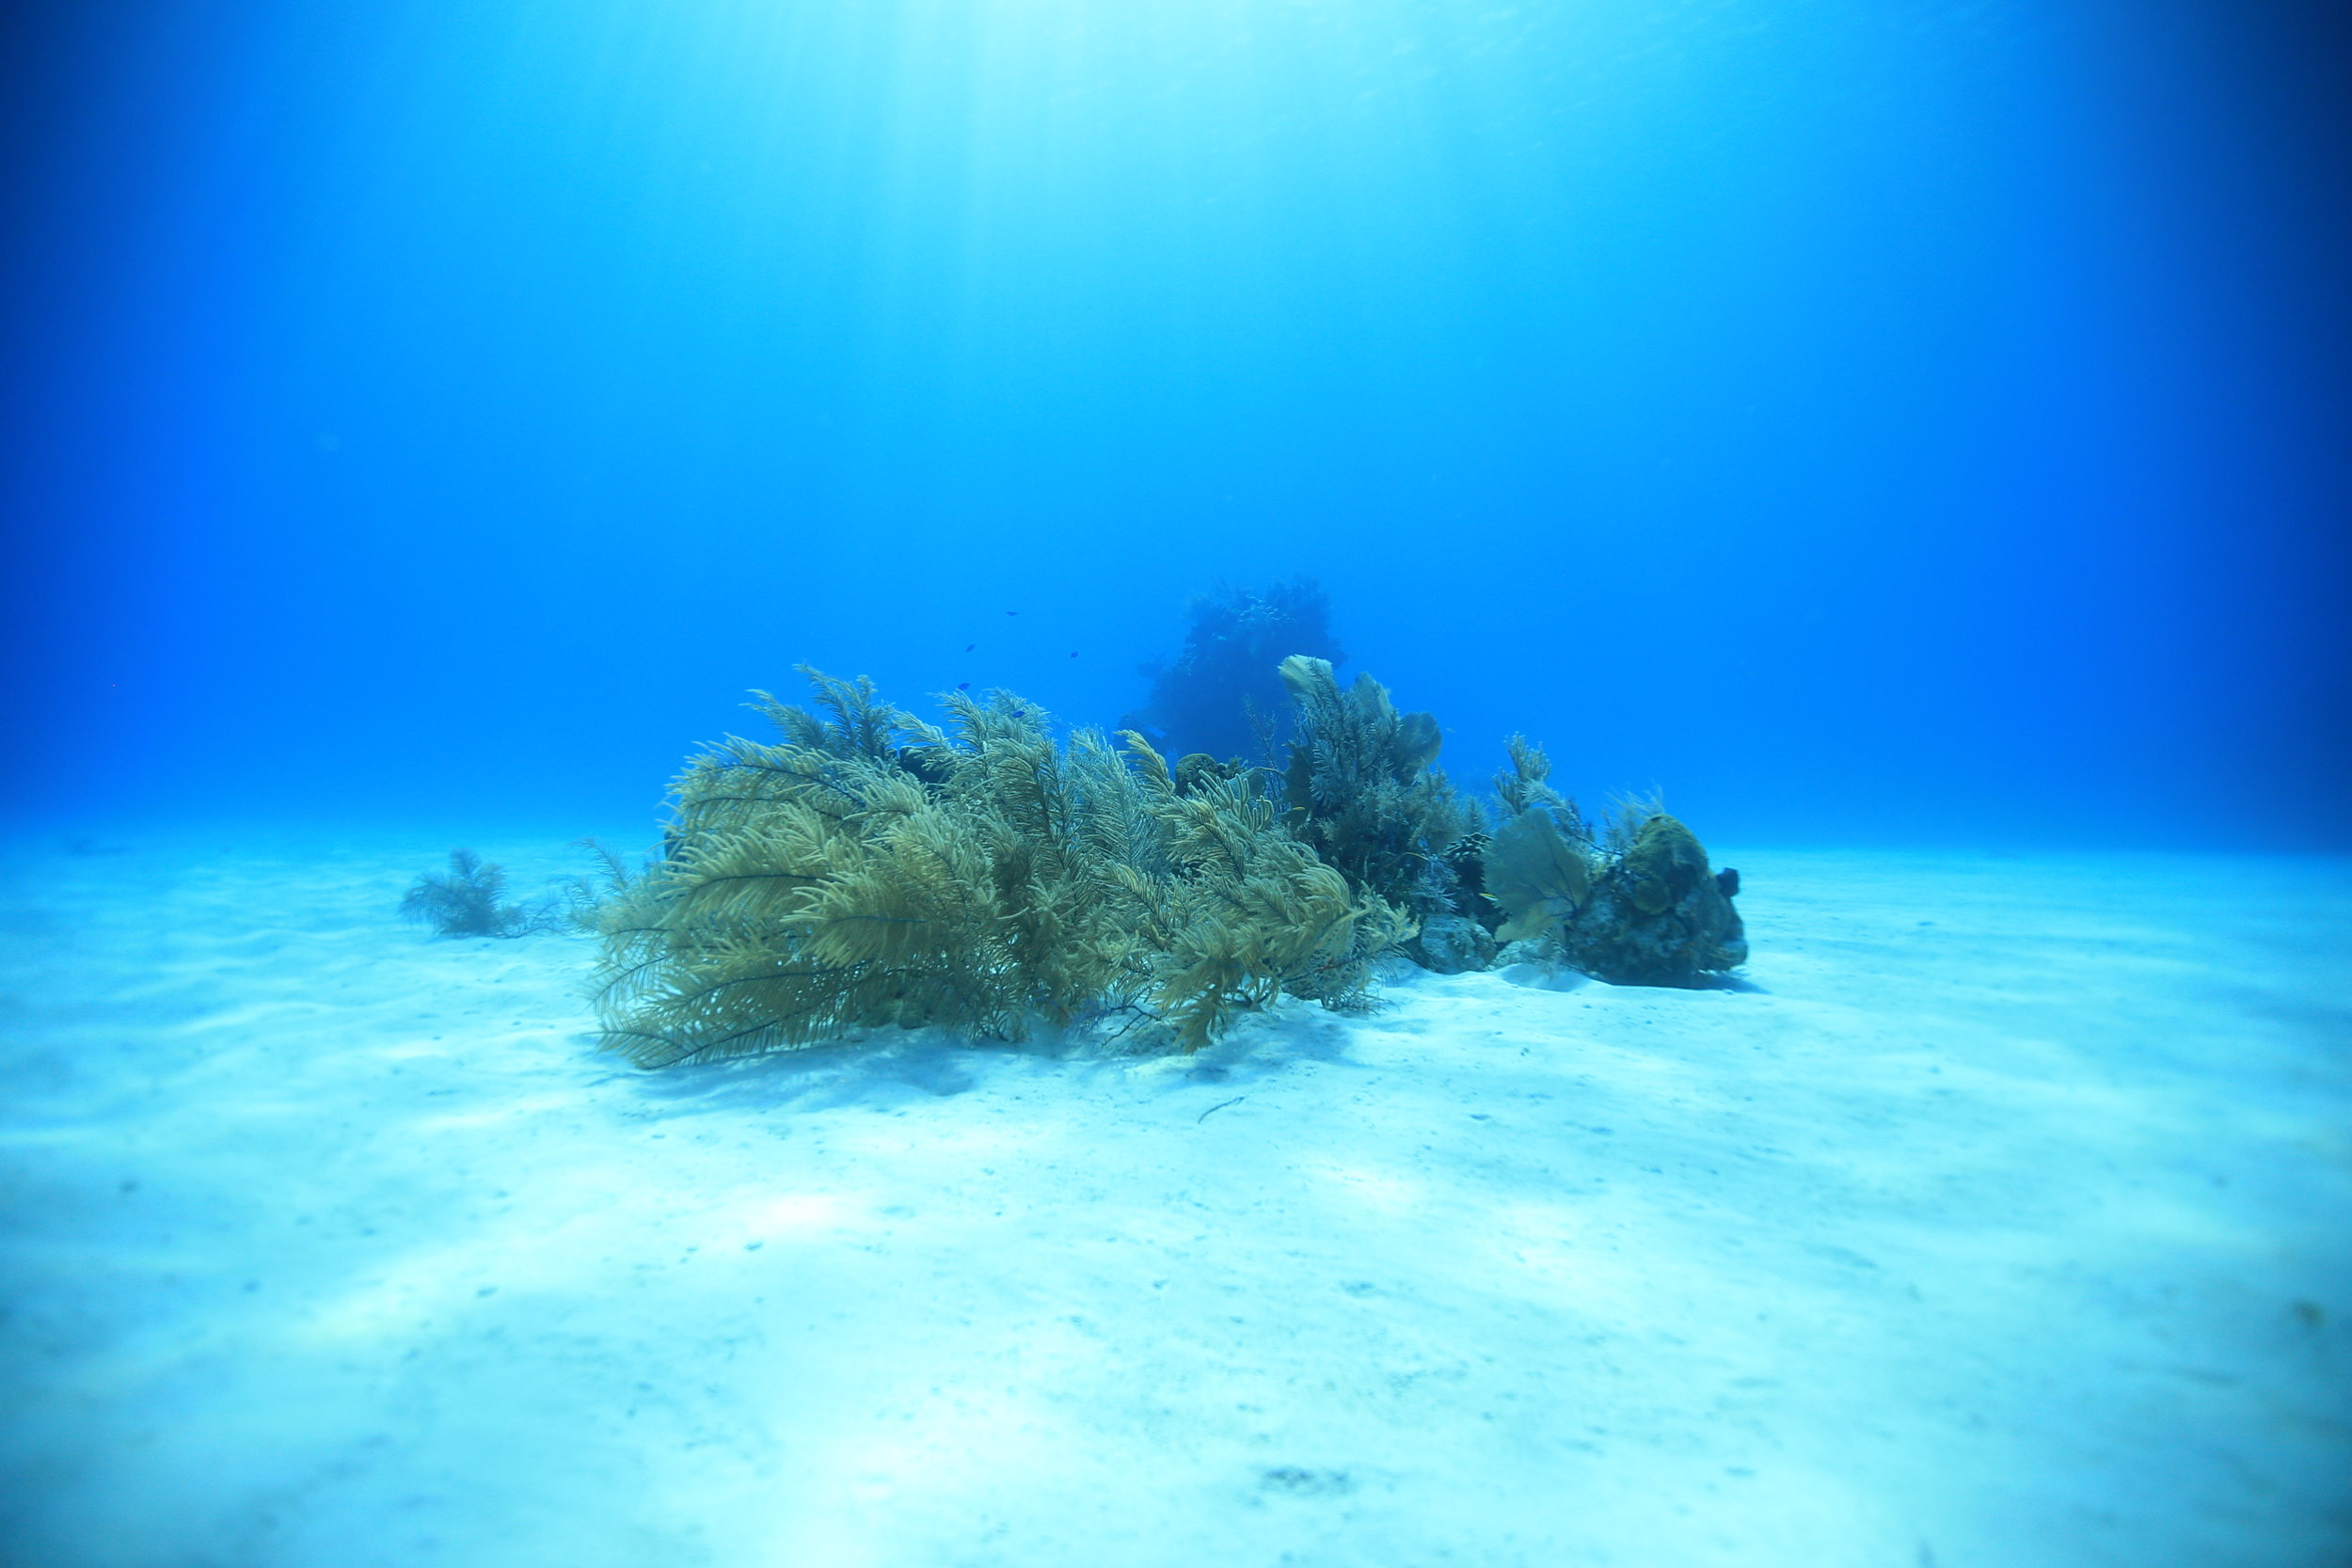 Let's talk about reef-safe products. - Those of us who spend time in the sun often rely heavily on sunscreen to protect against UV rays. Have you stopped to think what are the ingredients? What are these products doing to our environment? What can you do to help?